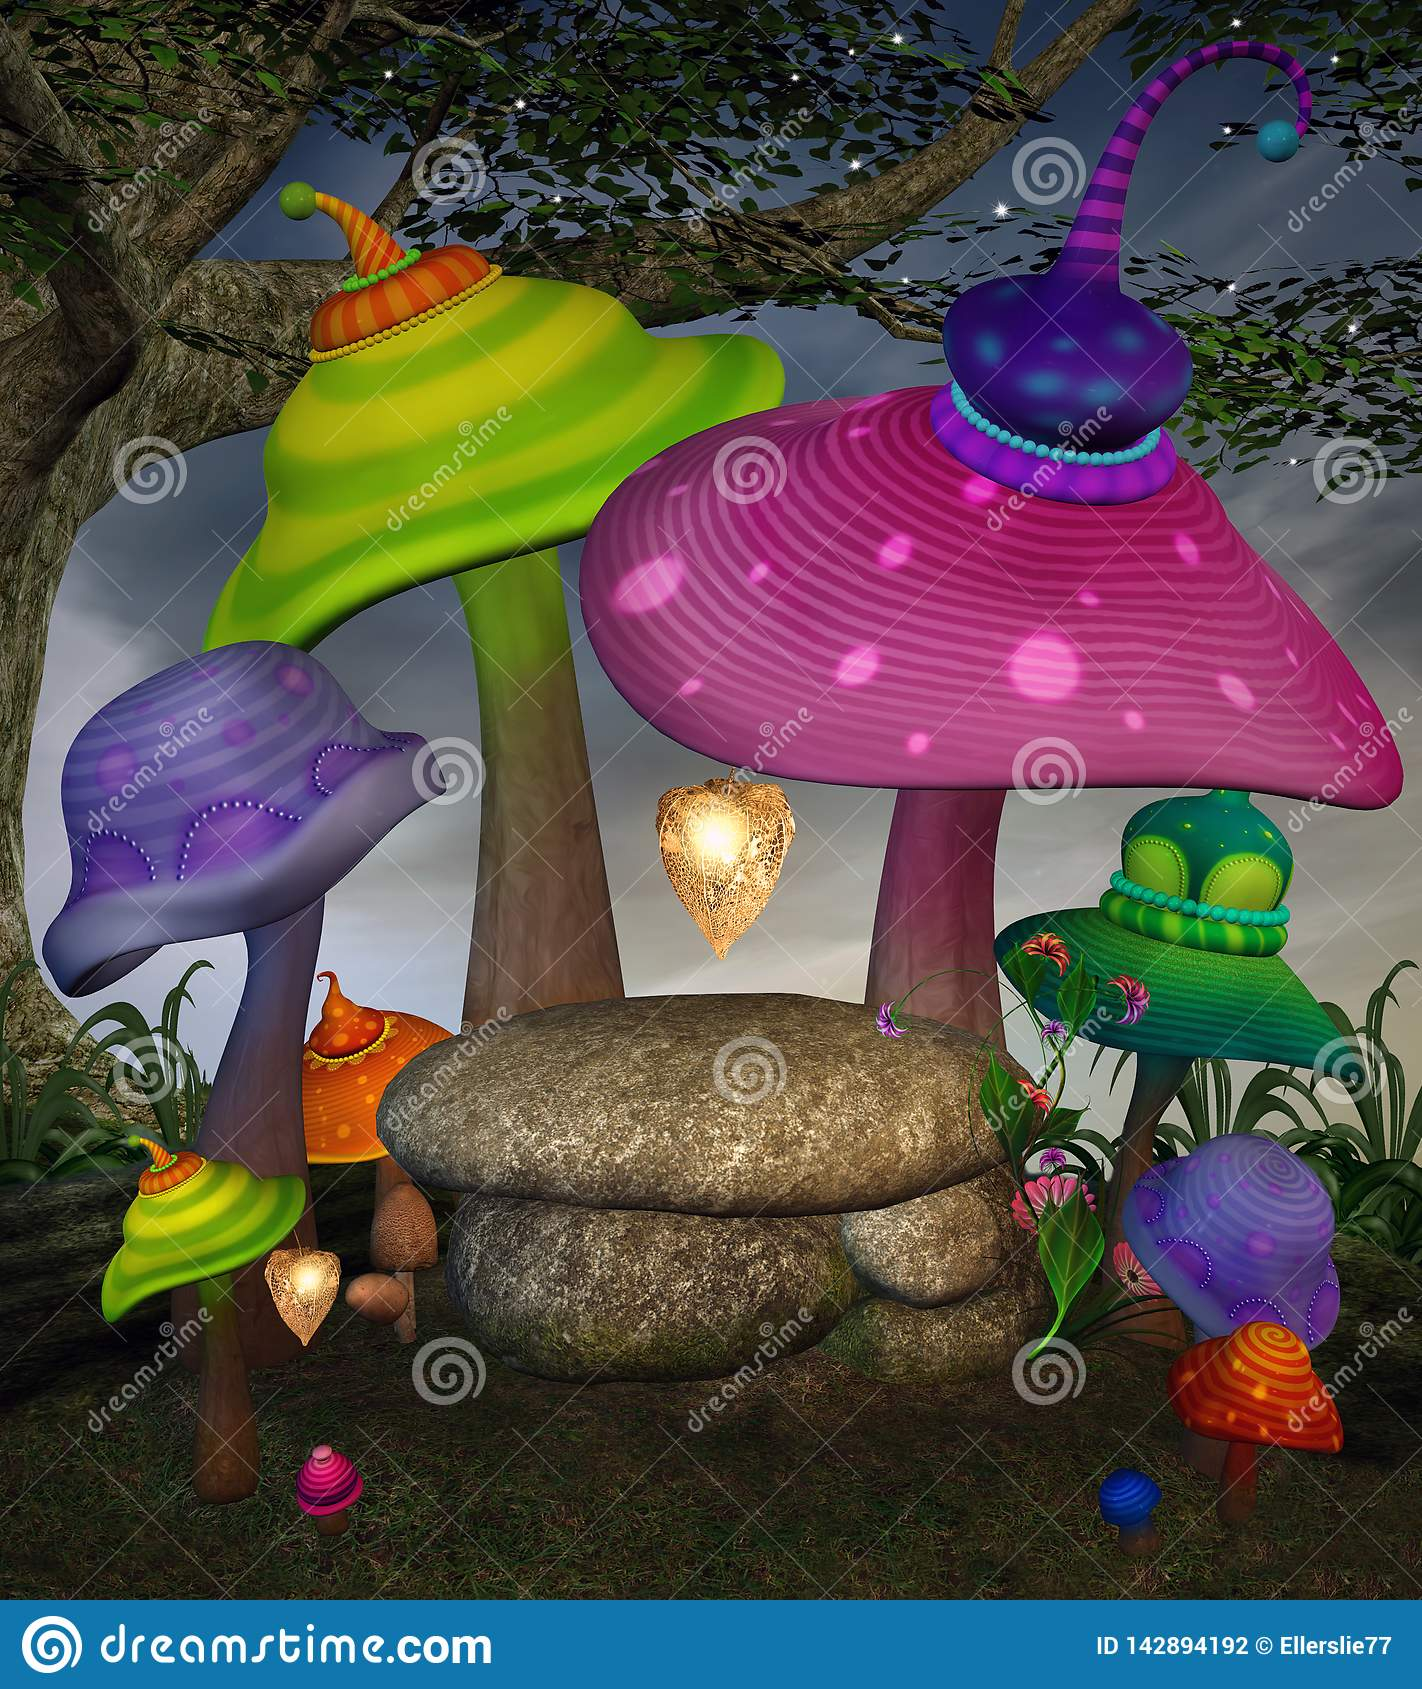 Colorful fantasy mushrooms in the enchanted forest